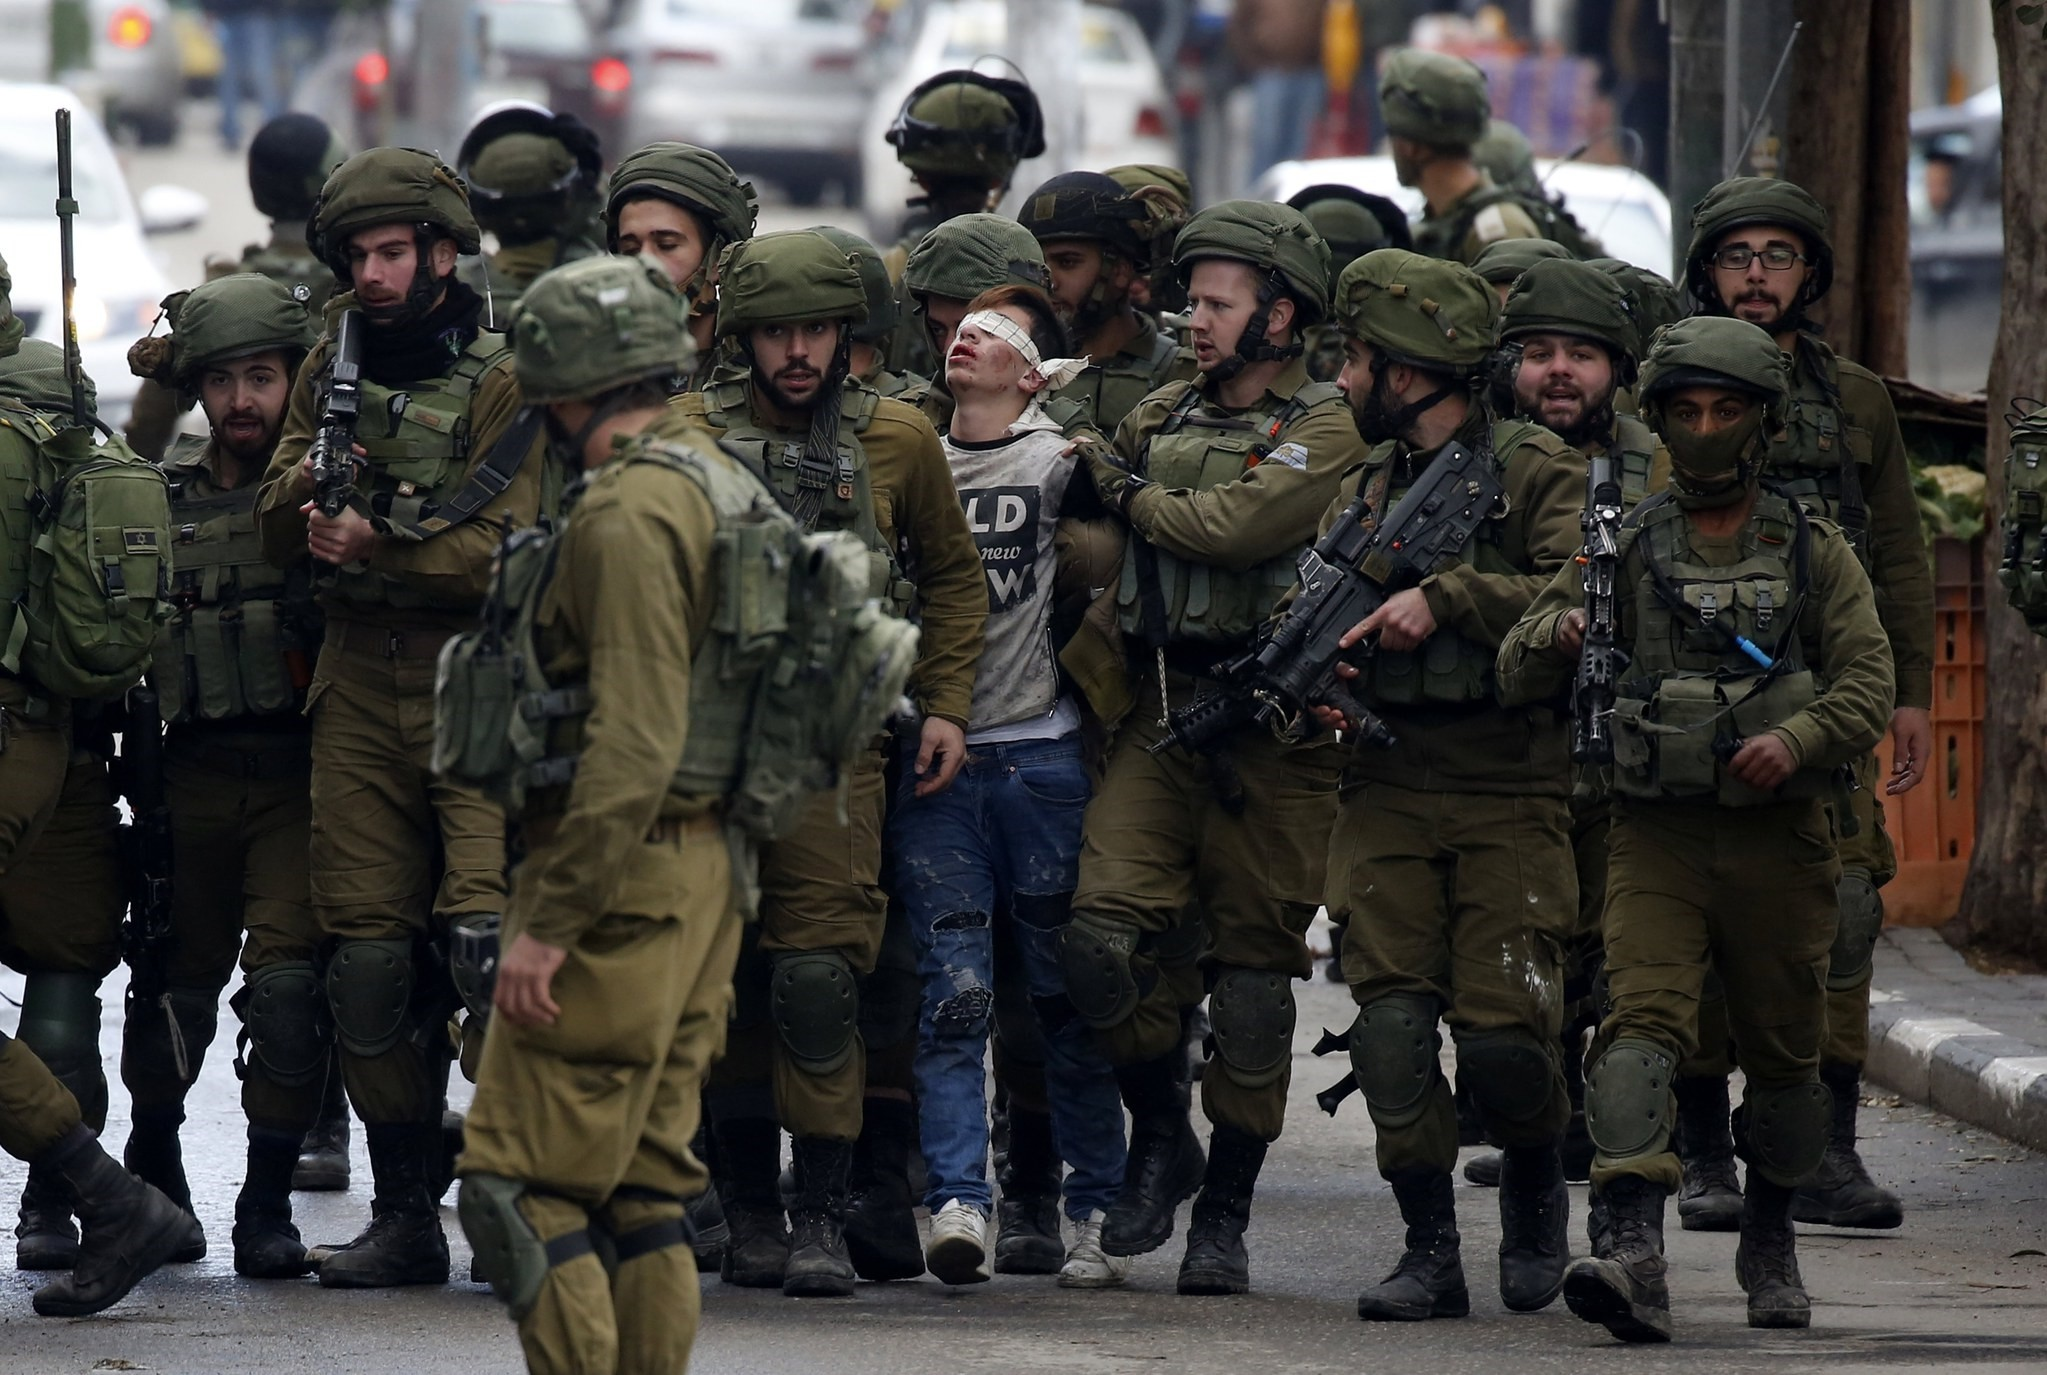 Israeli forces detain a Palestinian boy in protests against a decision by Trump to recognise Jerusalem as the capital of Israel, in the West Bank city Hebron, 07 December 2017. (EPA Photo)